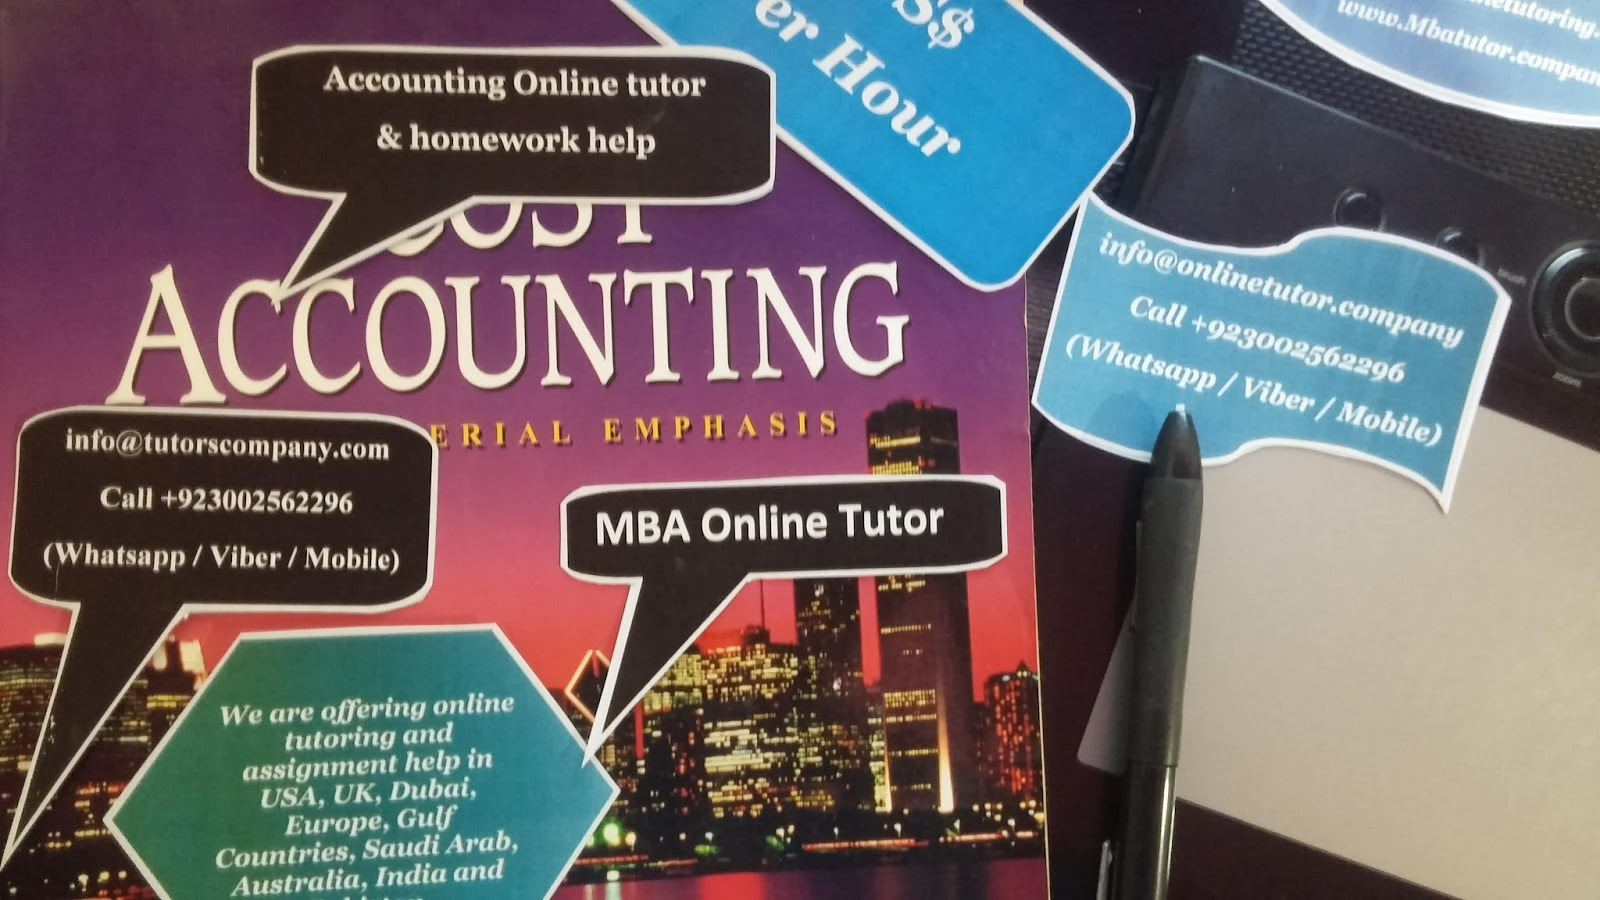 online accounting tutor in usa uk dubai qatar saudi arab mba managerial accounting tutor usa uk uae